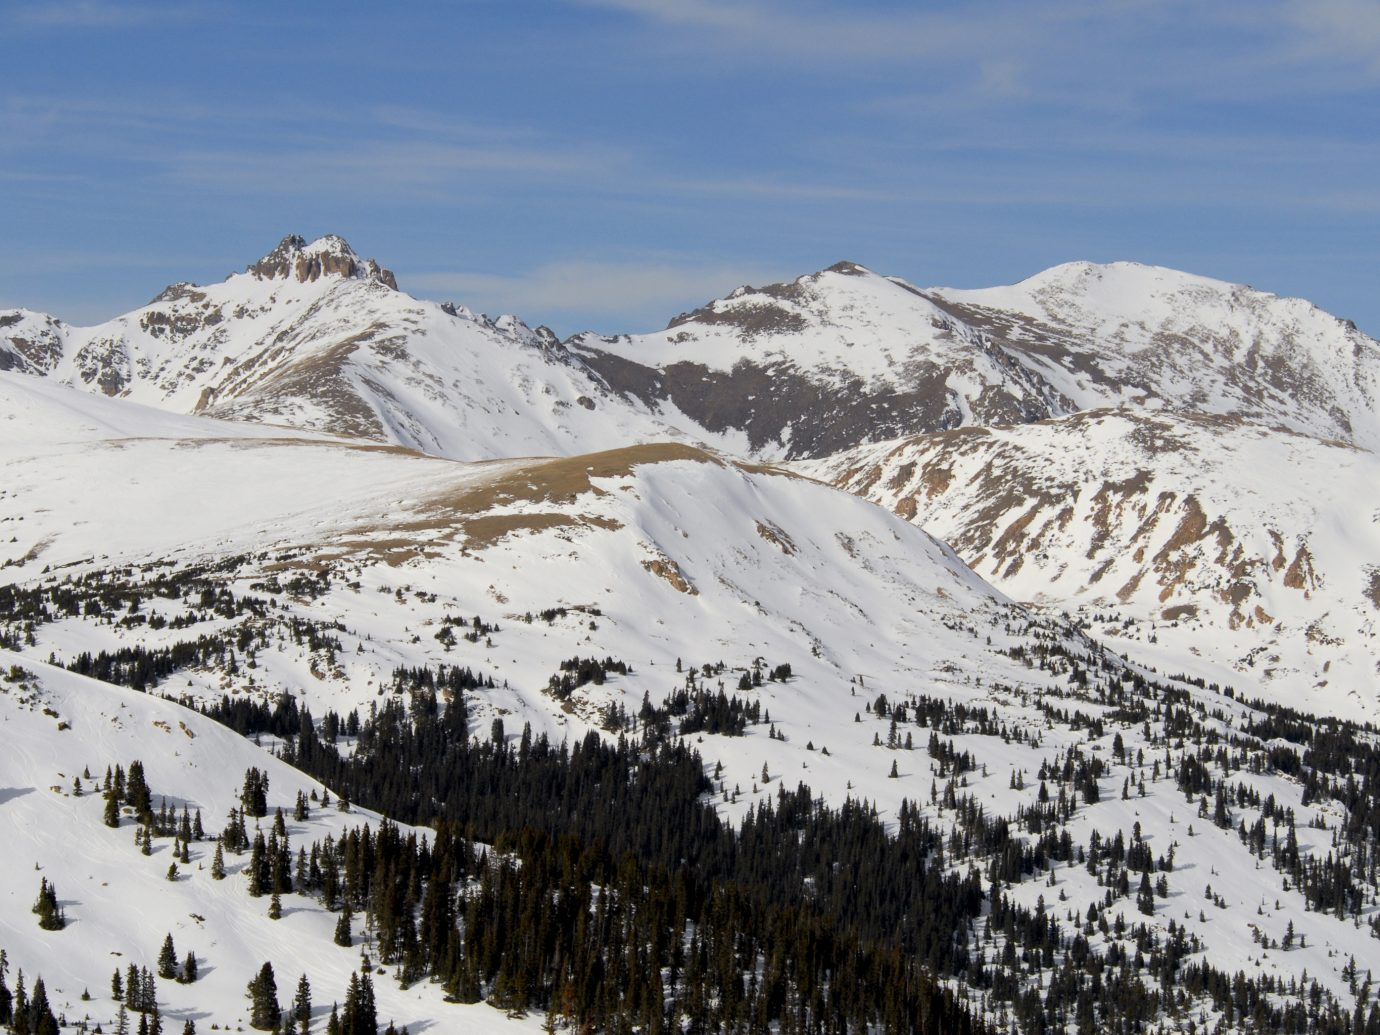 Rocky Mountain peaks in Colorado, covered in early season snow.